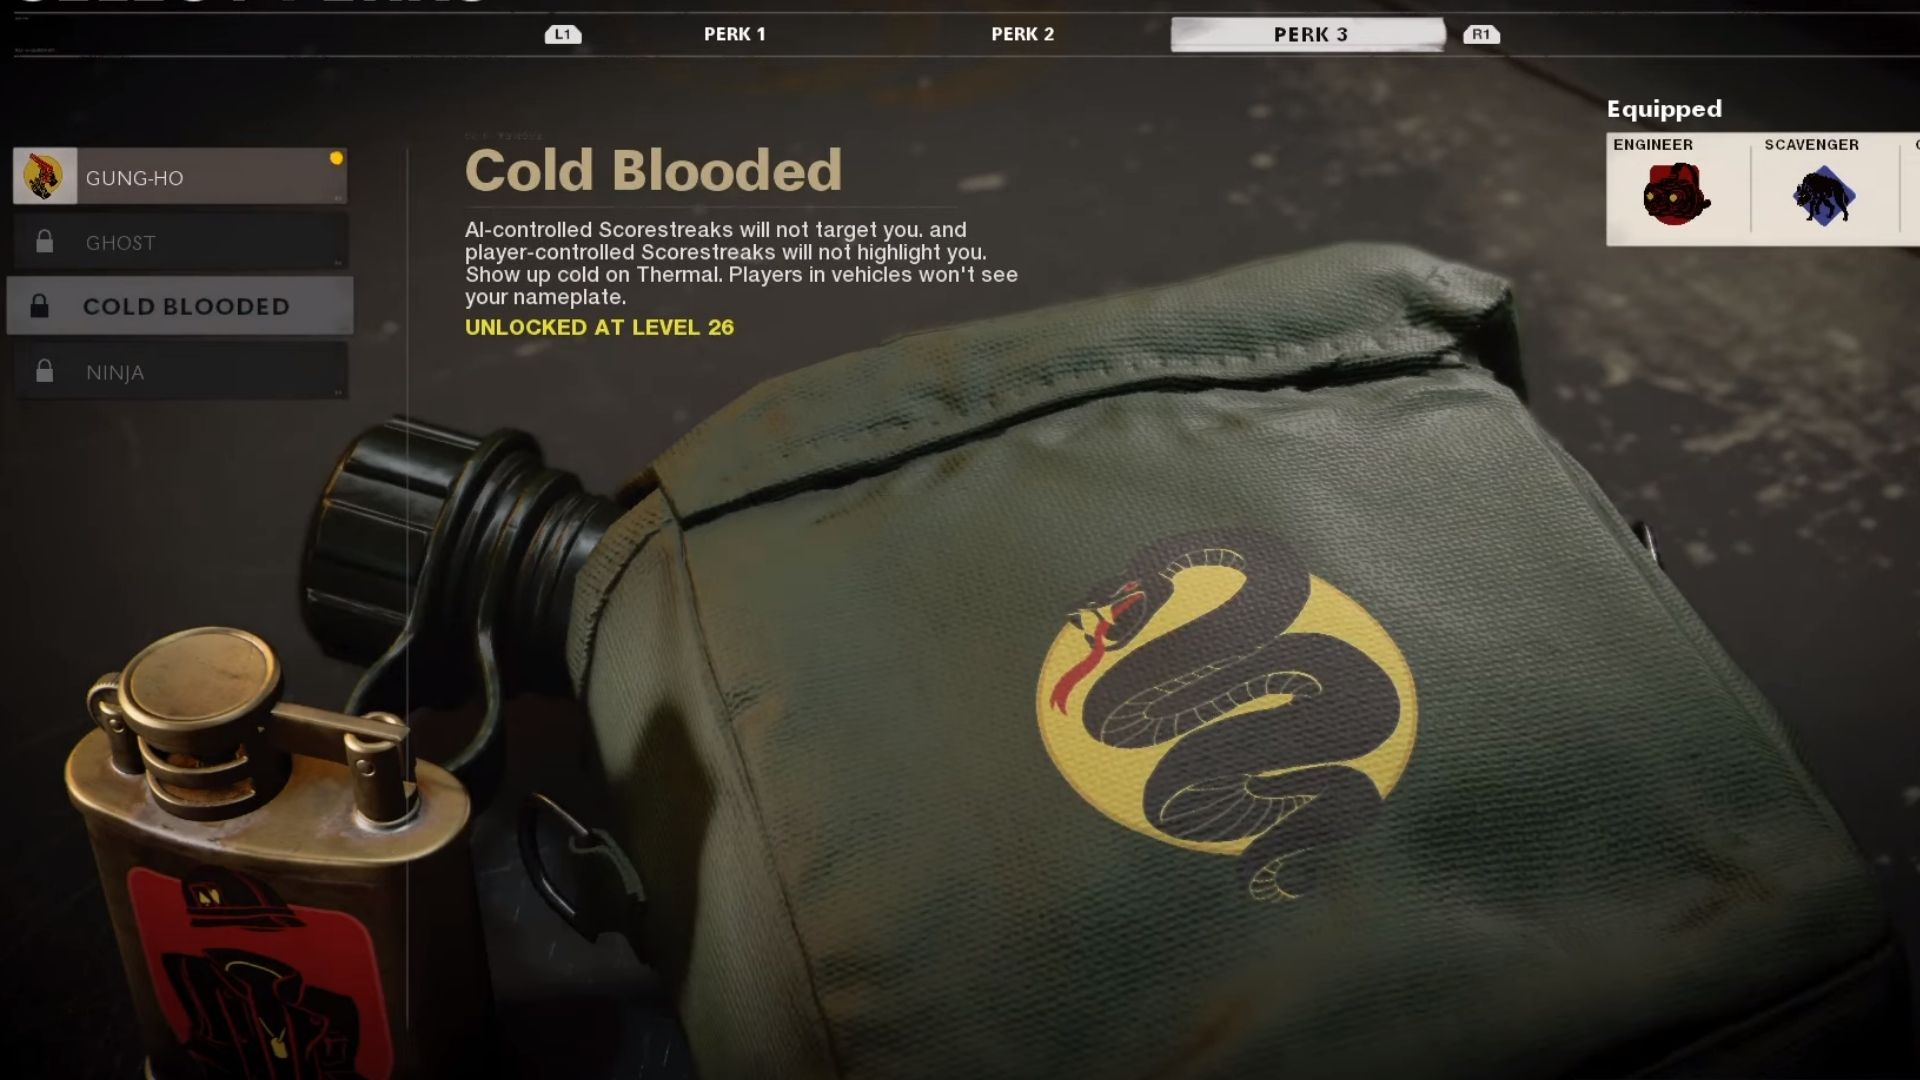 cold-blooded perk in black ops cold war